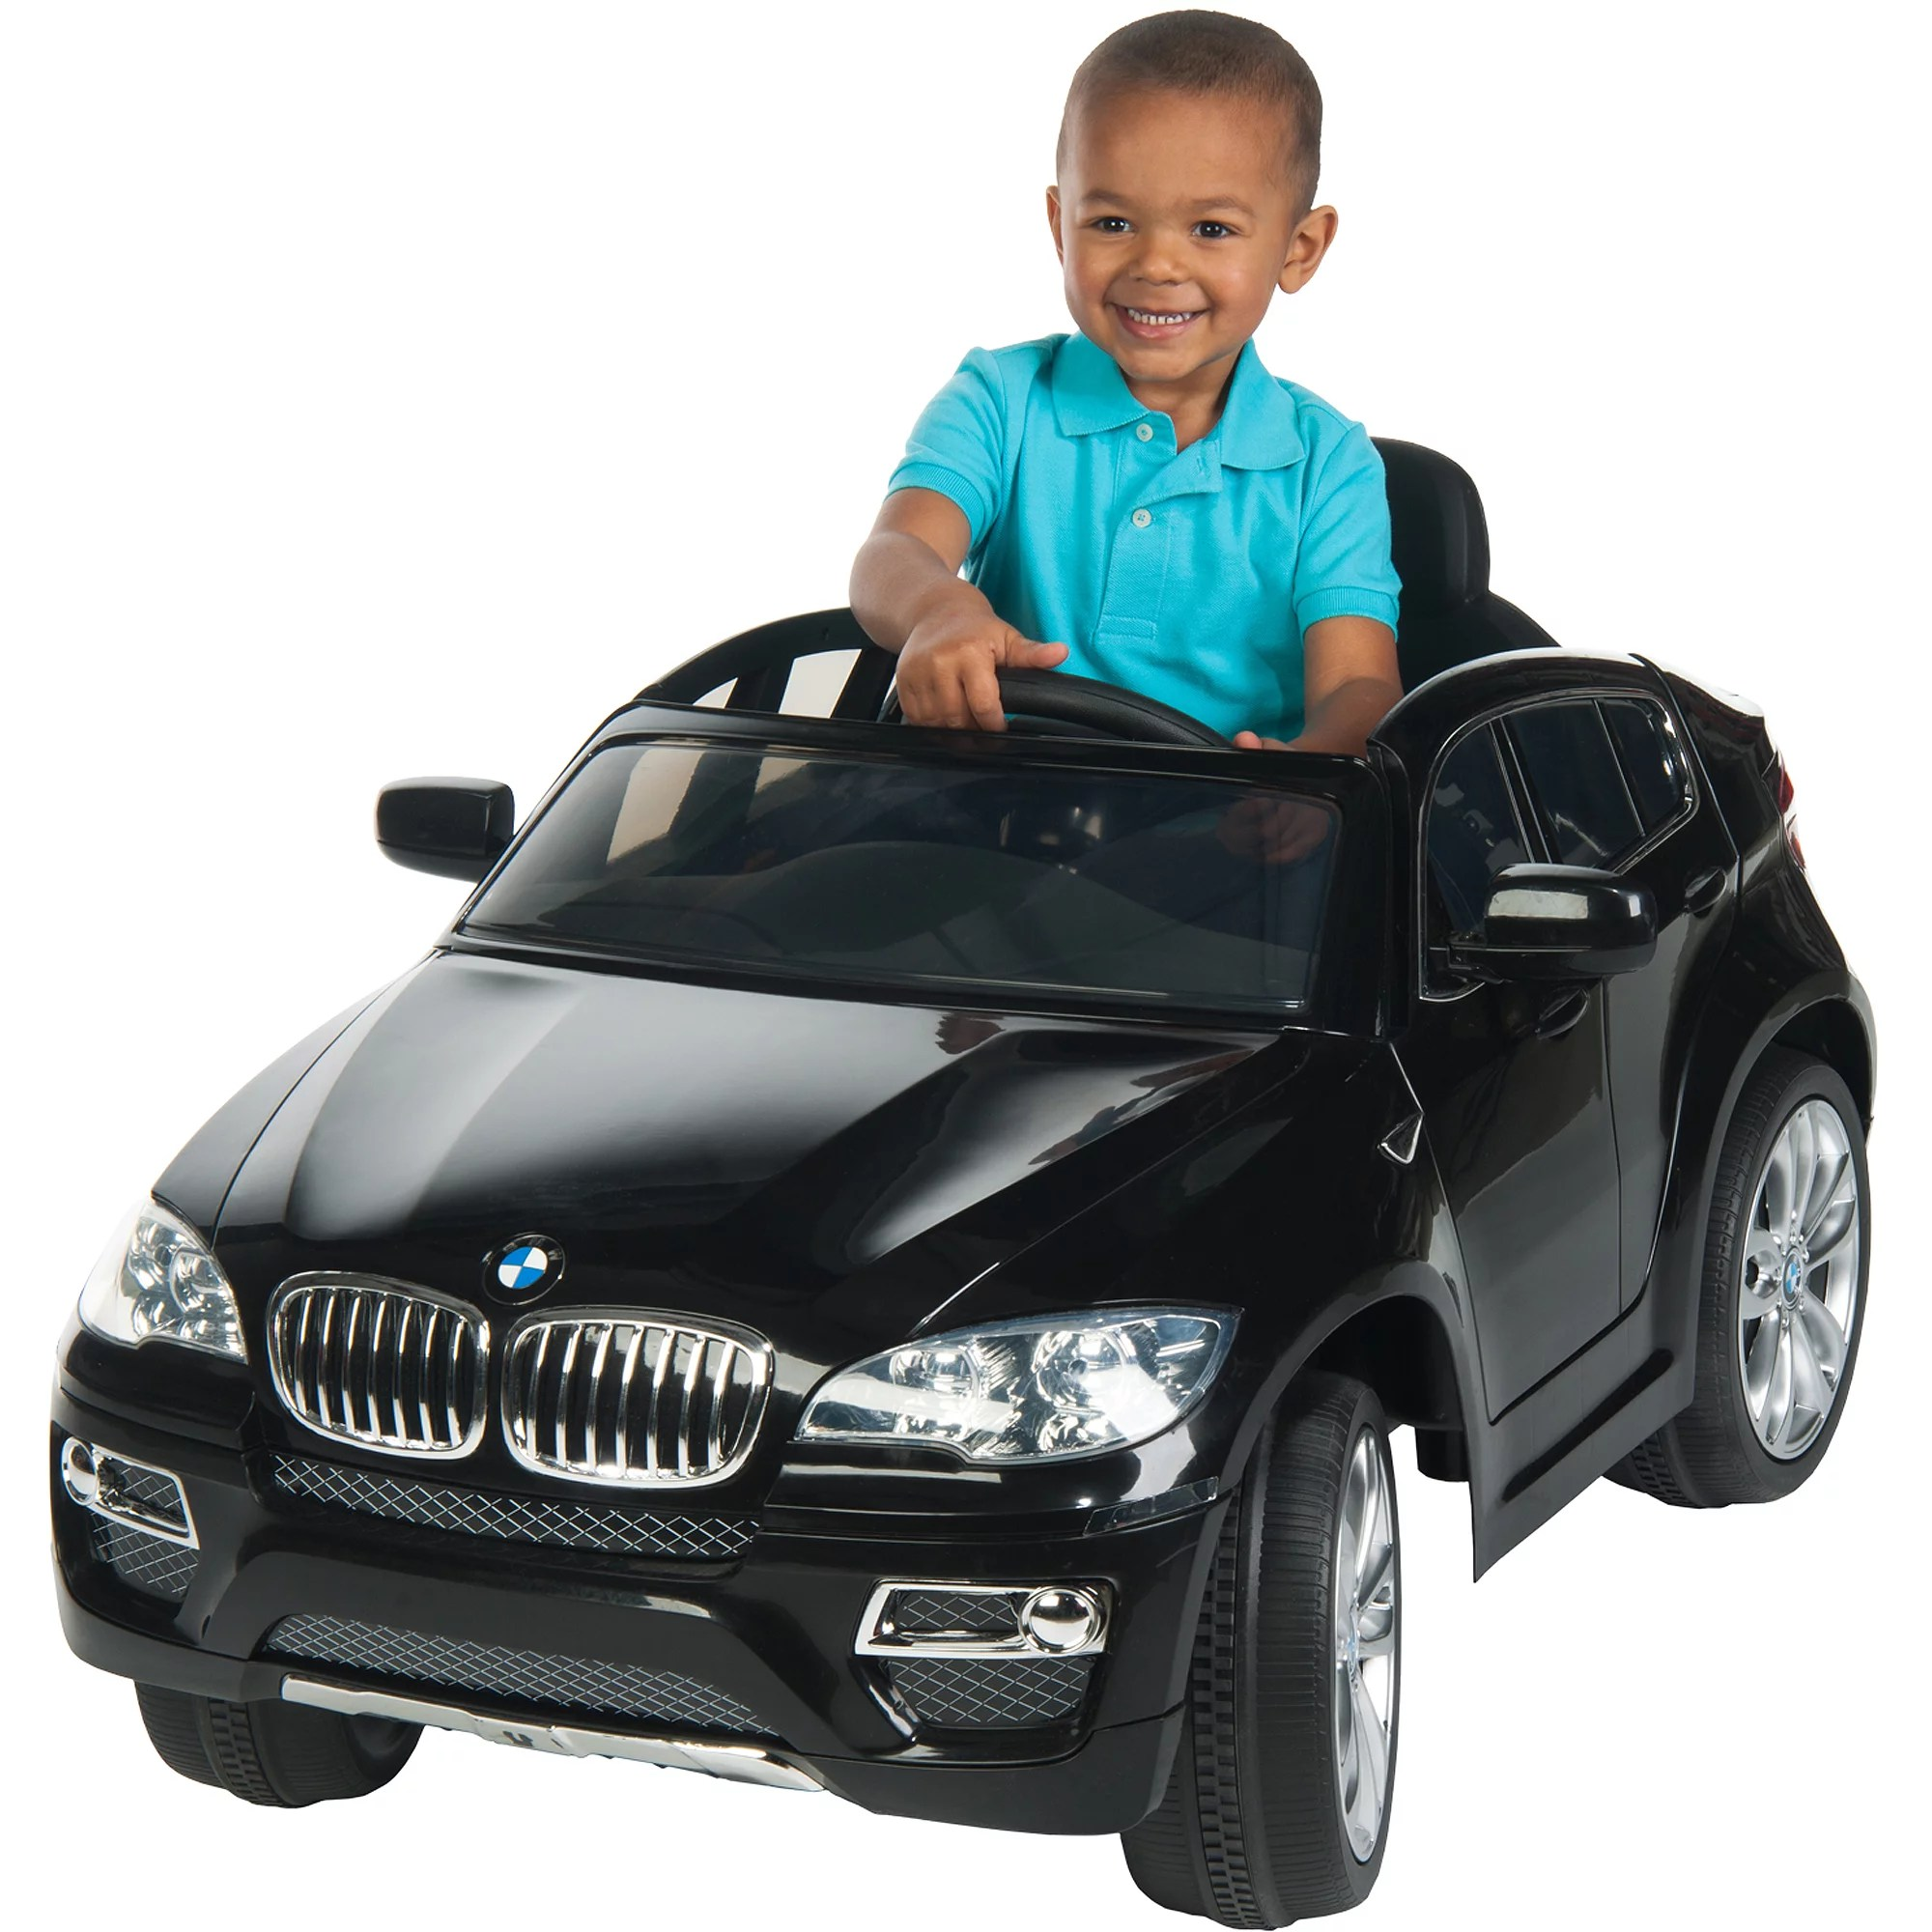 Electric Cars For Kids Toys For 3 4 Year Old Boys Baby